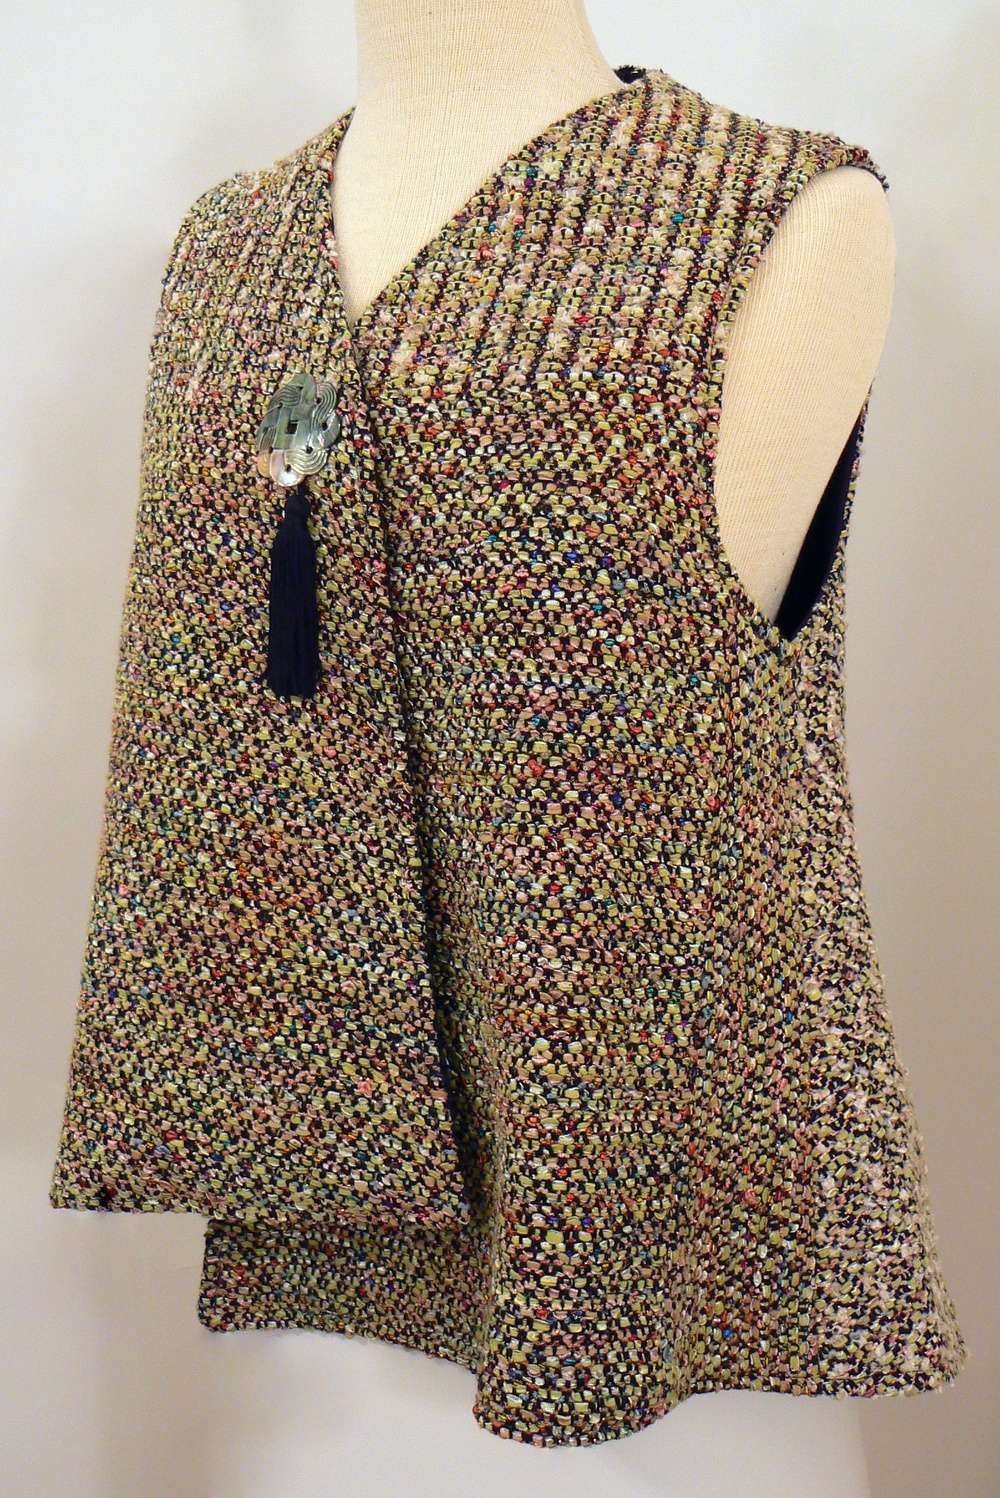 Handwoven Clothing, Vest, Kathleen Weir-West, 12-001.JPG